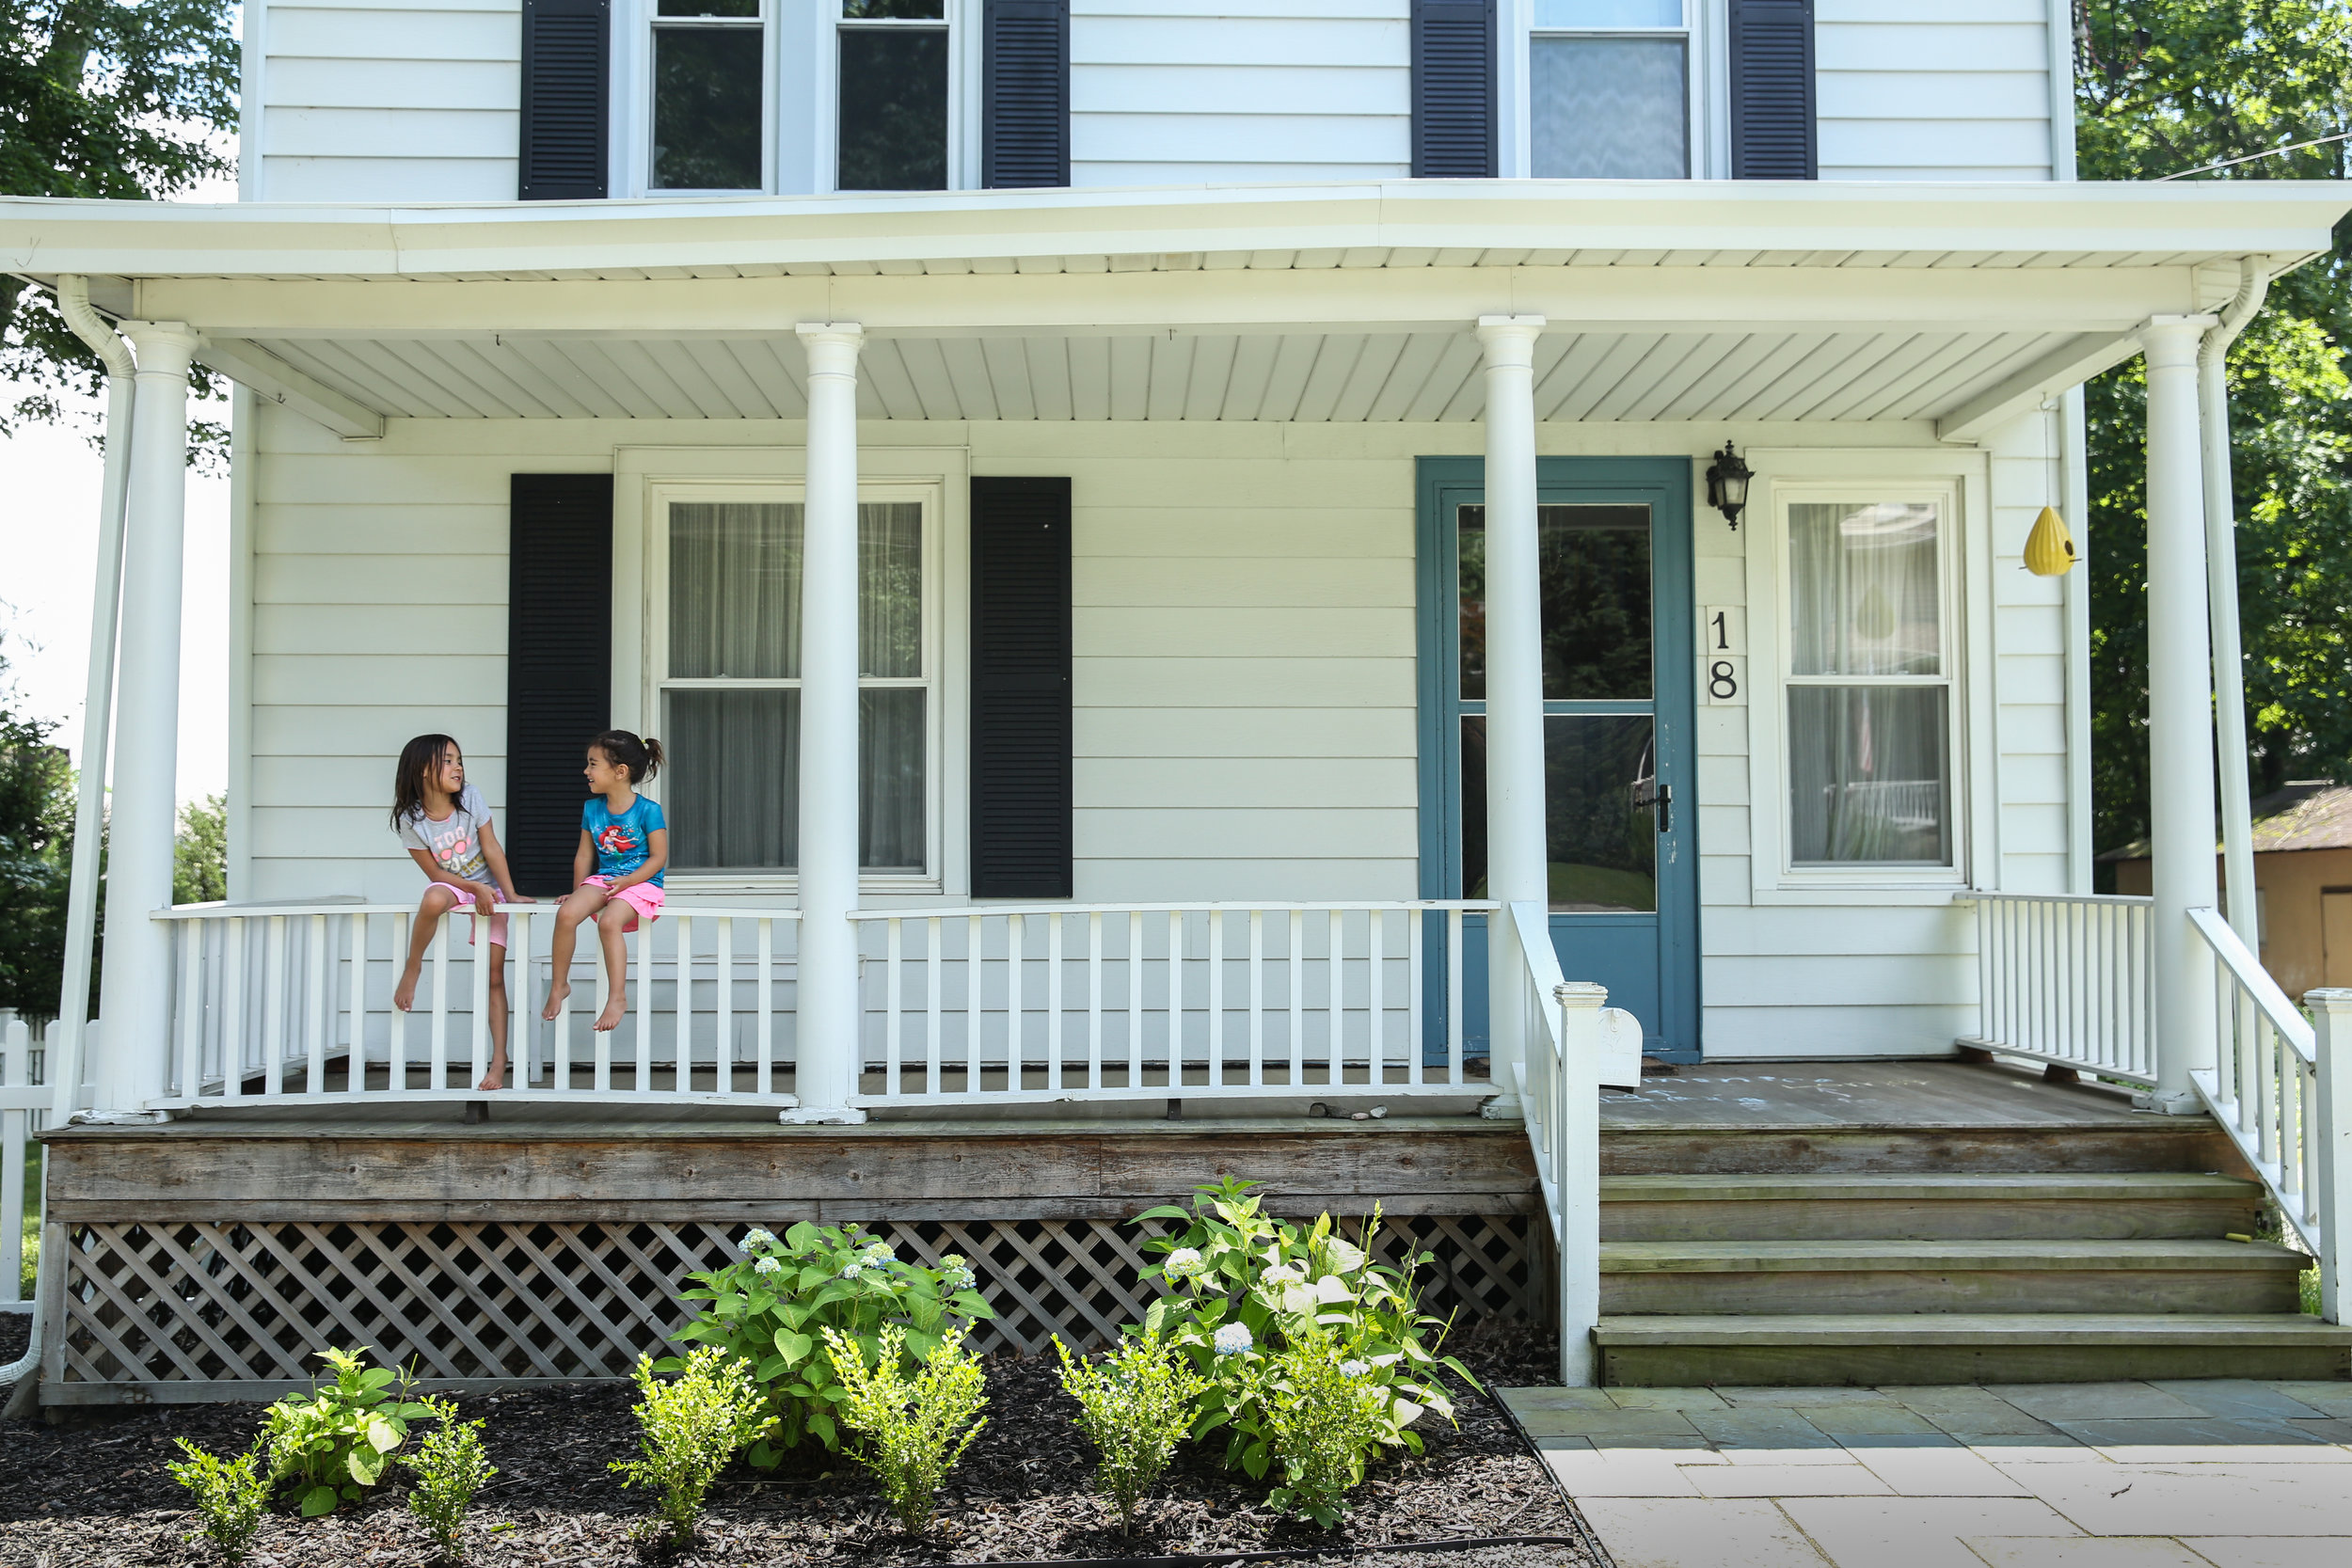 Two girls sit on railing of front porch